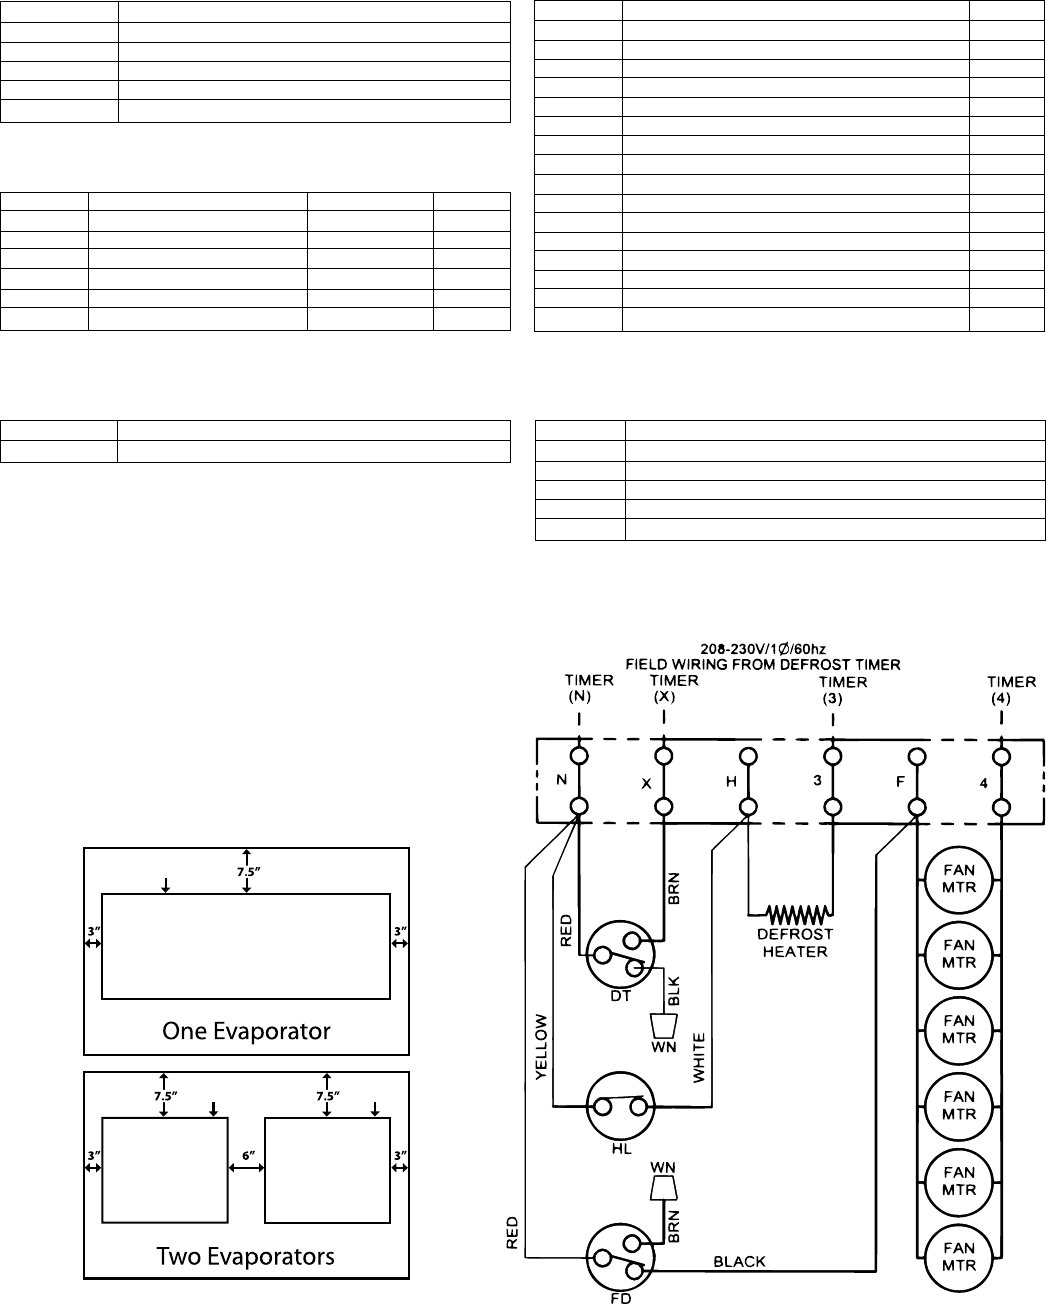 2f271777 ed48 431c affa 693c84f3fb6b bgb page 11 of heatcraft refrigeration products humidifier 25005601 defrost termination thermostat wiring diagram at panicattacktreatment.co